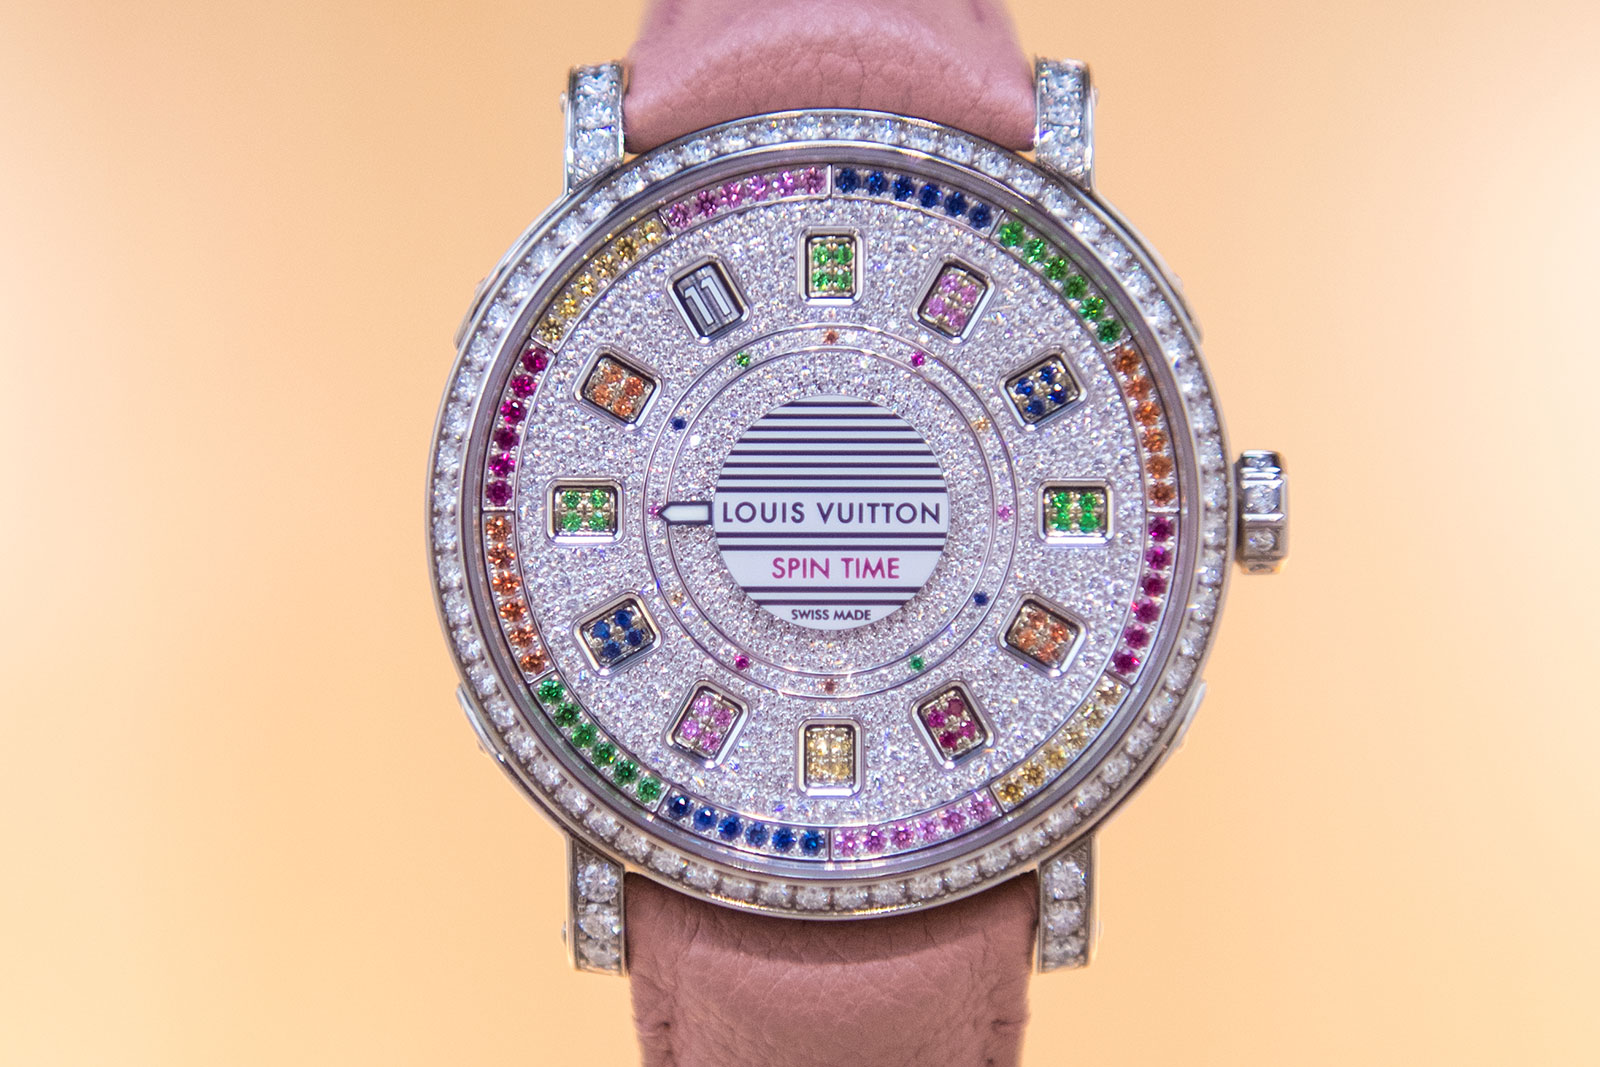 Louis Vuitton Escale-Spin-Time rainbow sapphires